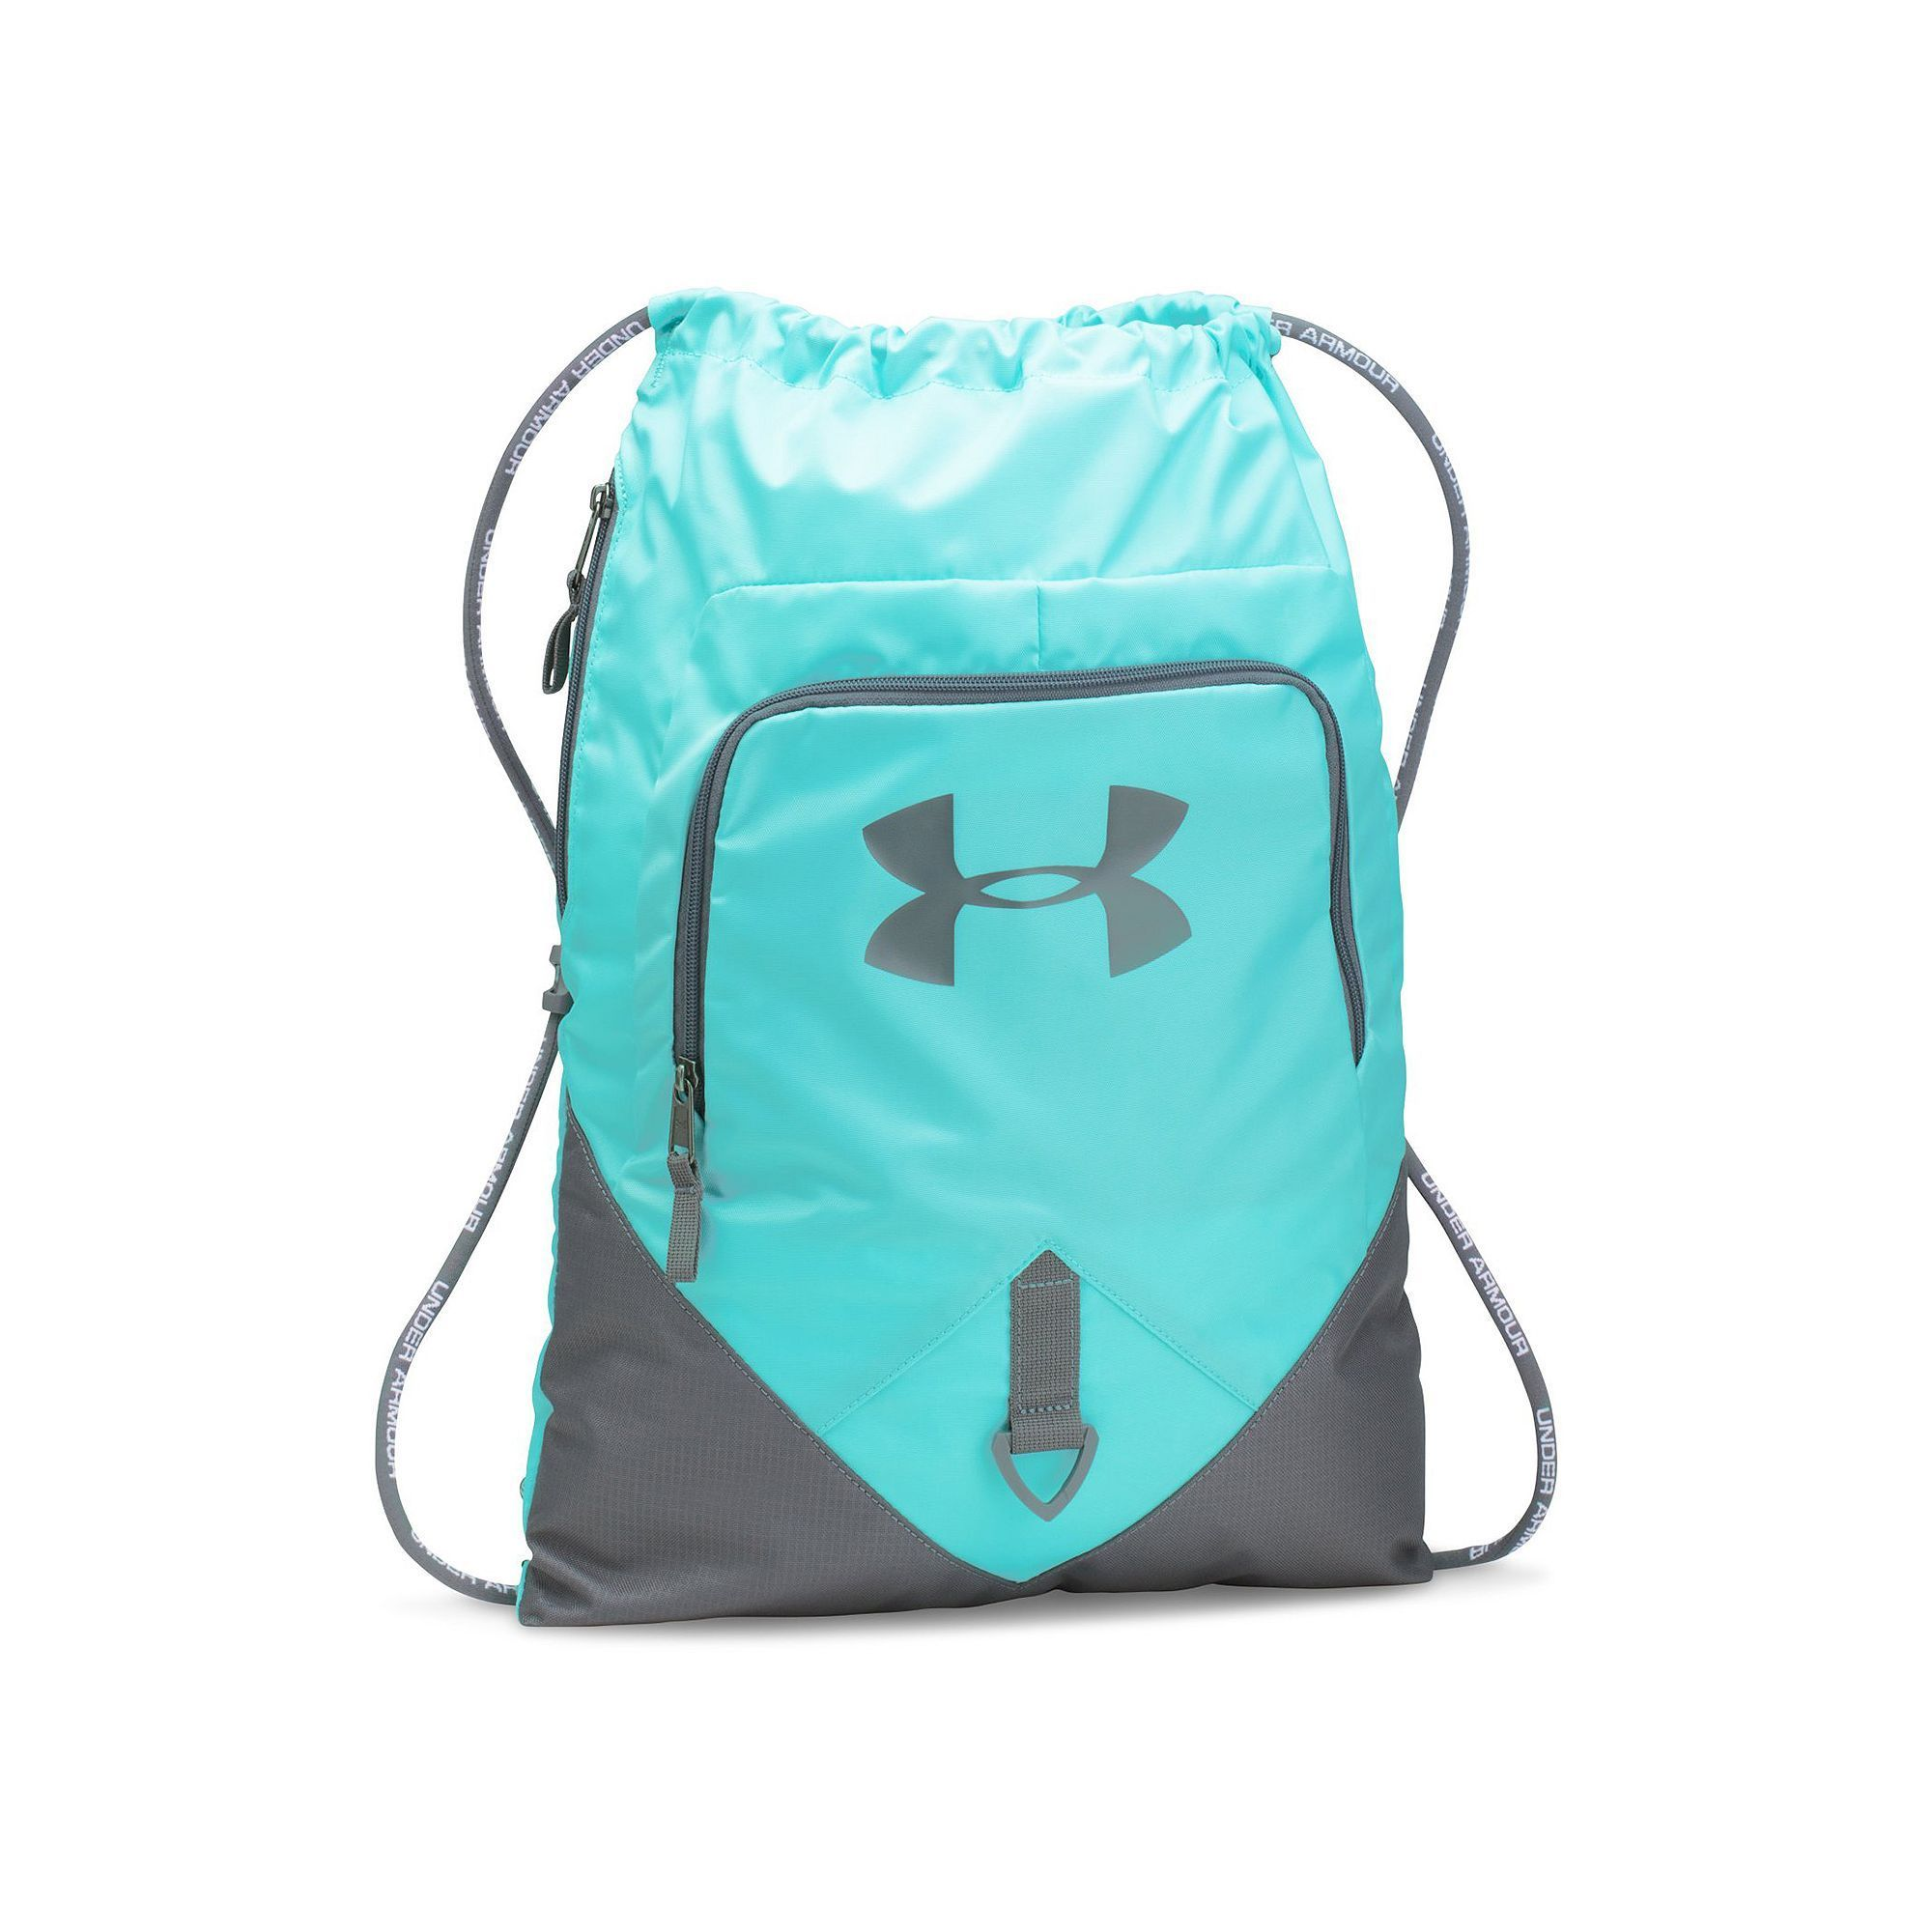 77d3512d4f4a Under Armour Undeniable Drawstring Backpack in 2019